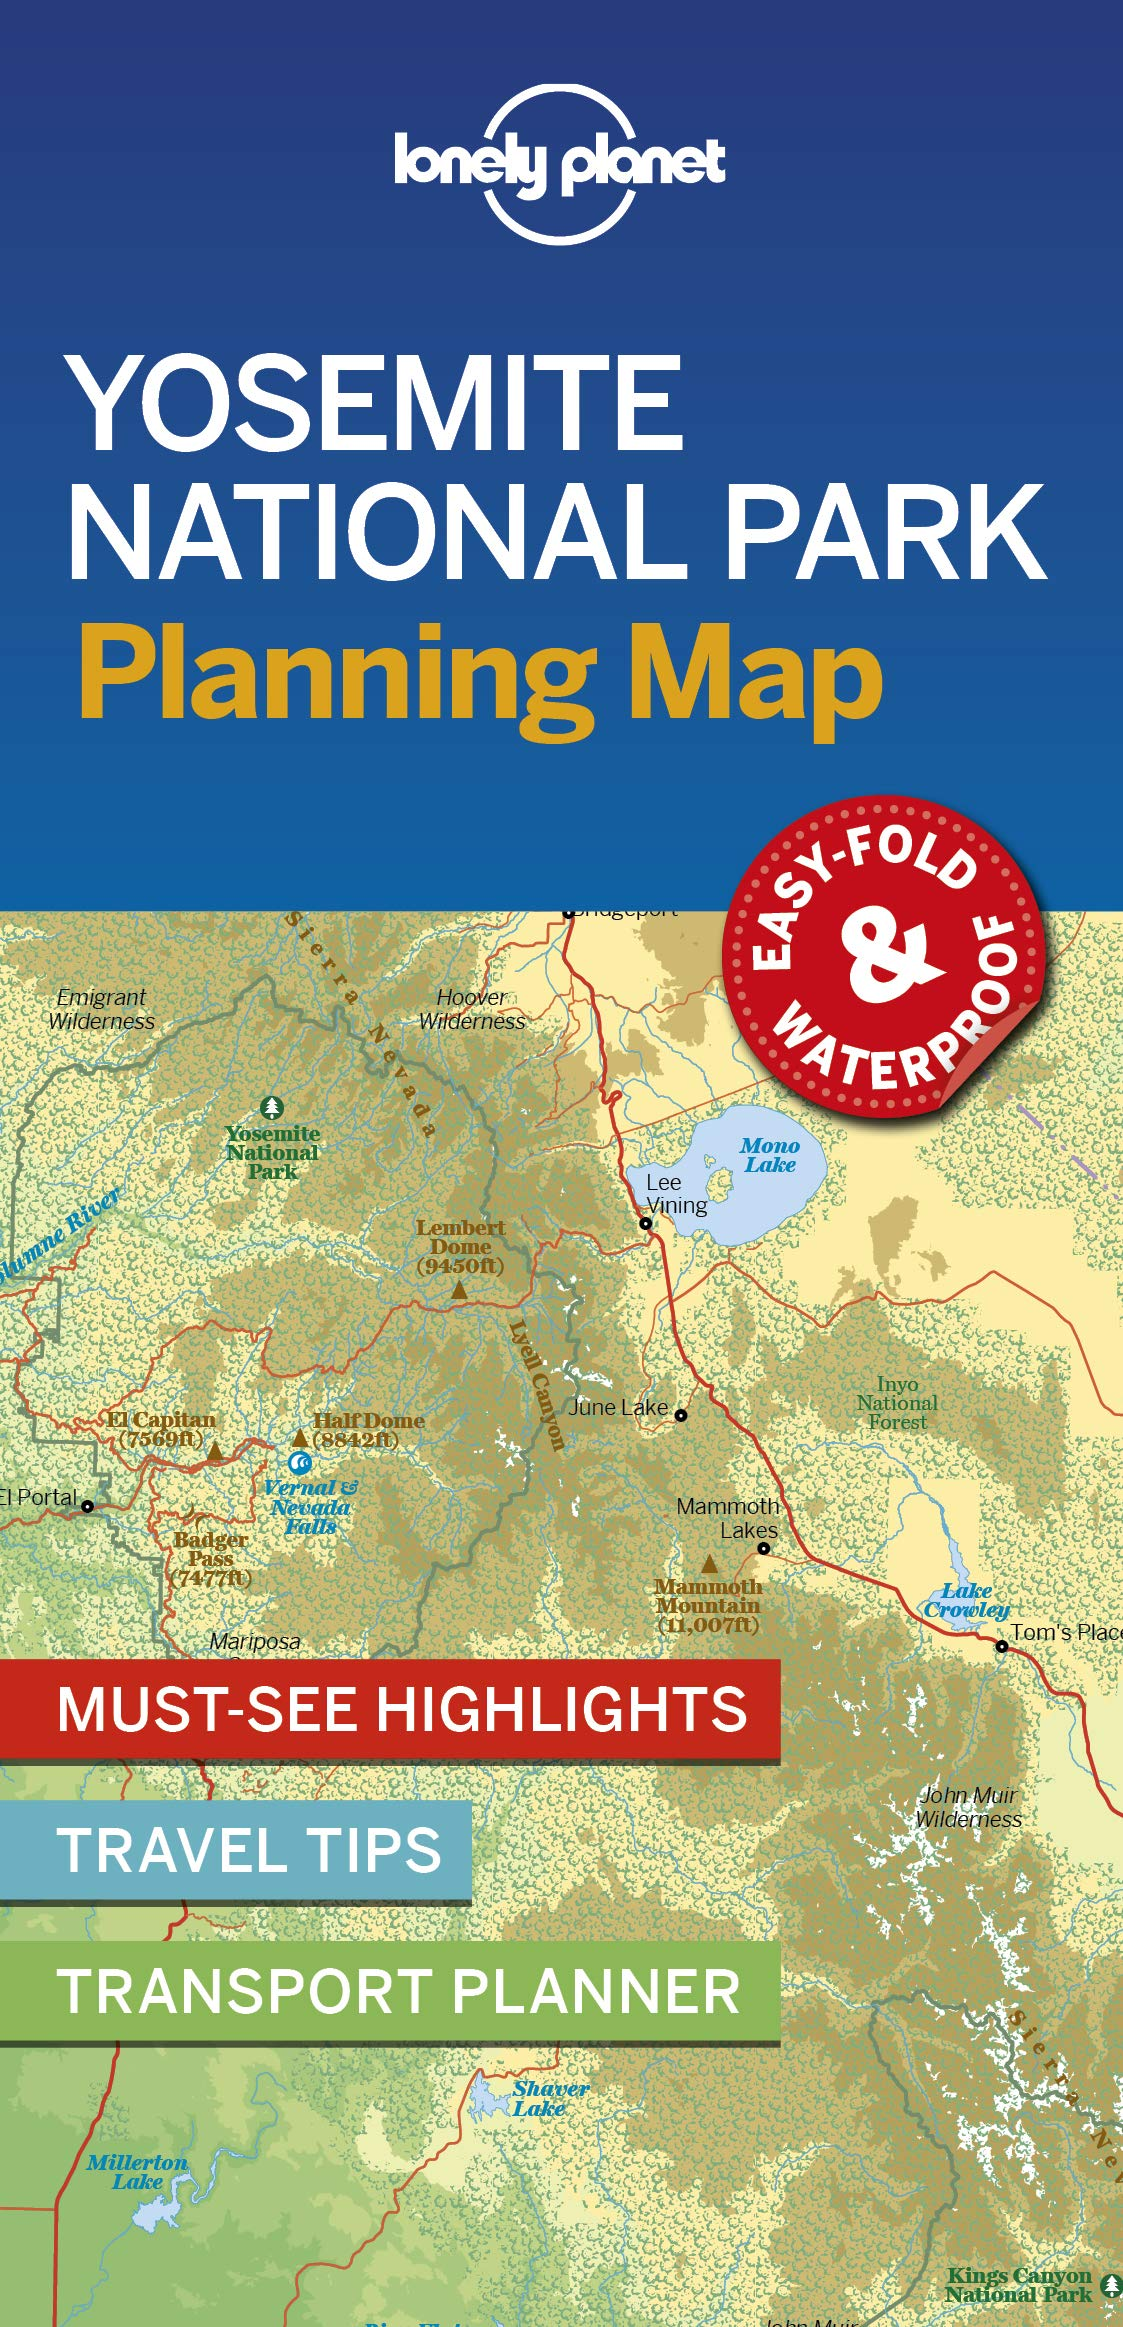 Yosemite National Park Planning Map 1e